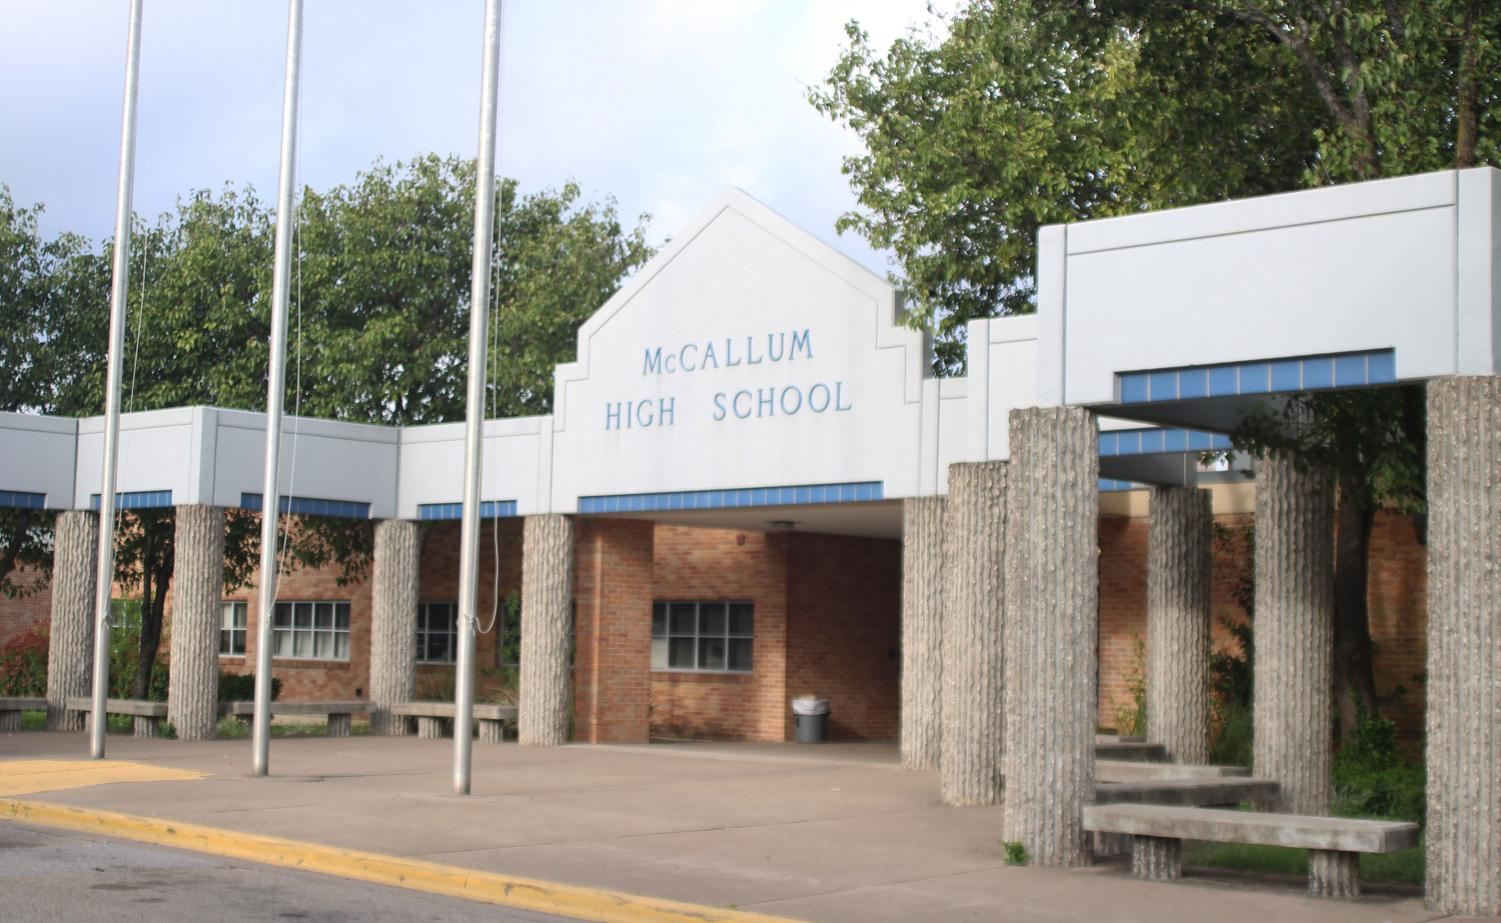 McCallum High School got a 92 out of 100 when evaluated by the Texas Education Agency.  This was the third-highest grade out of all of AISD High Schools, and was even higher than AISD's average grade, an 89. Though McCallum got a great grade, not all schools did.  Photo by Sarah Slaten.